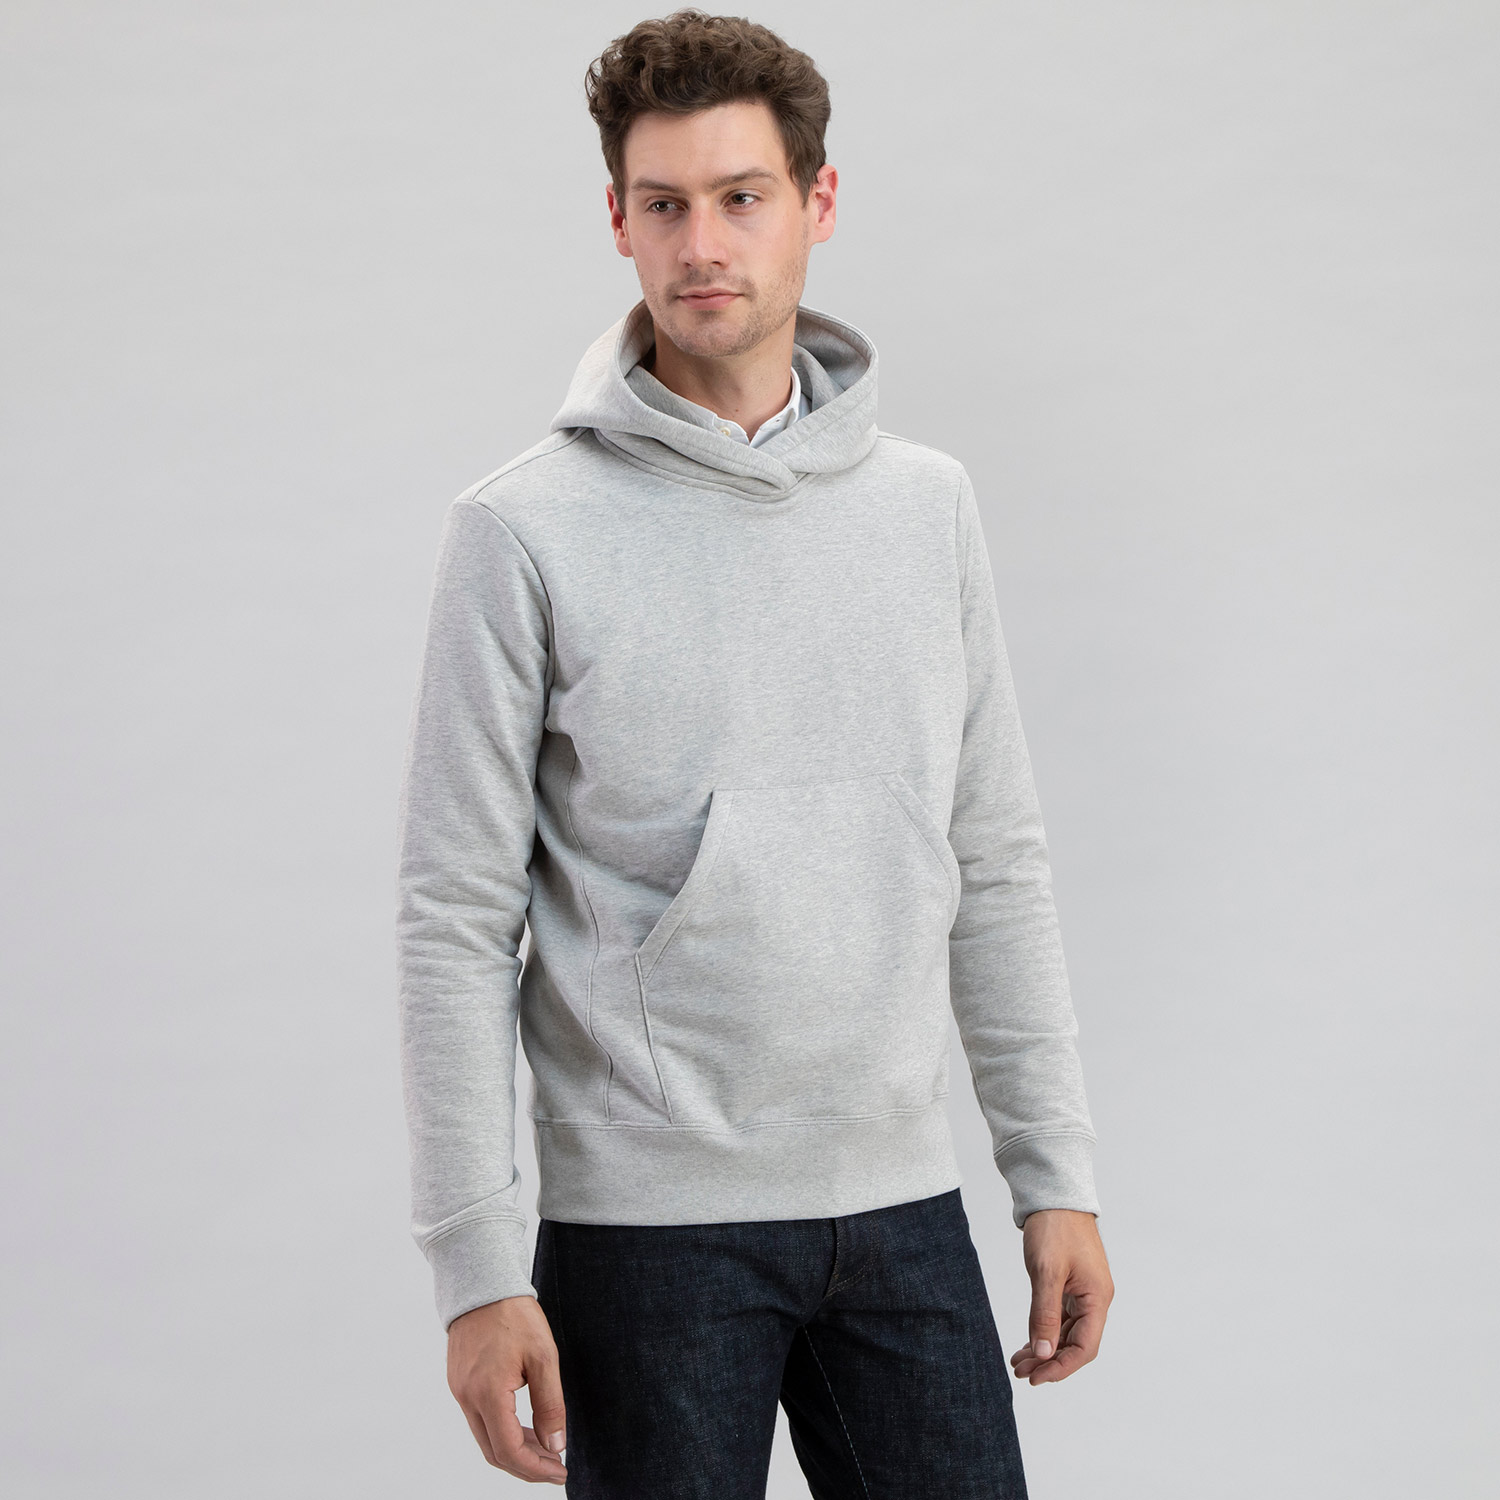 Electric Company Pullover Heather Grey